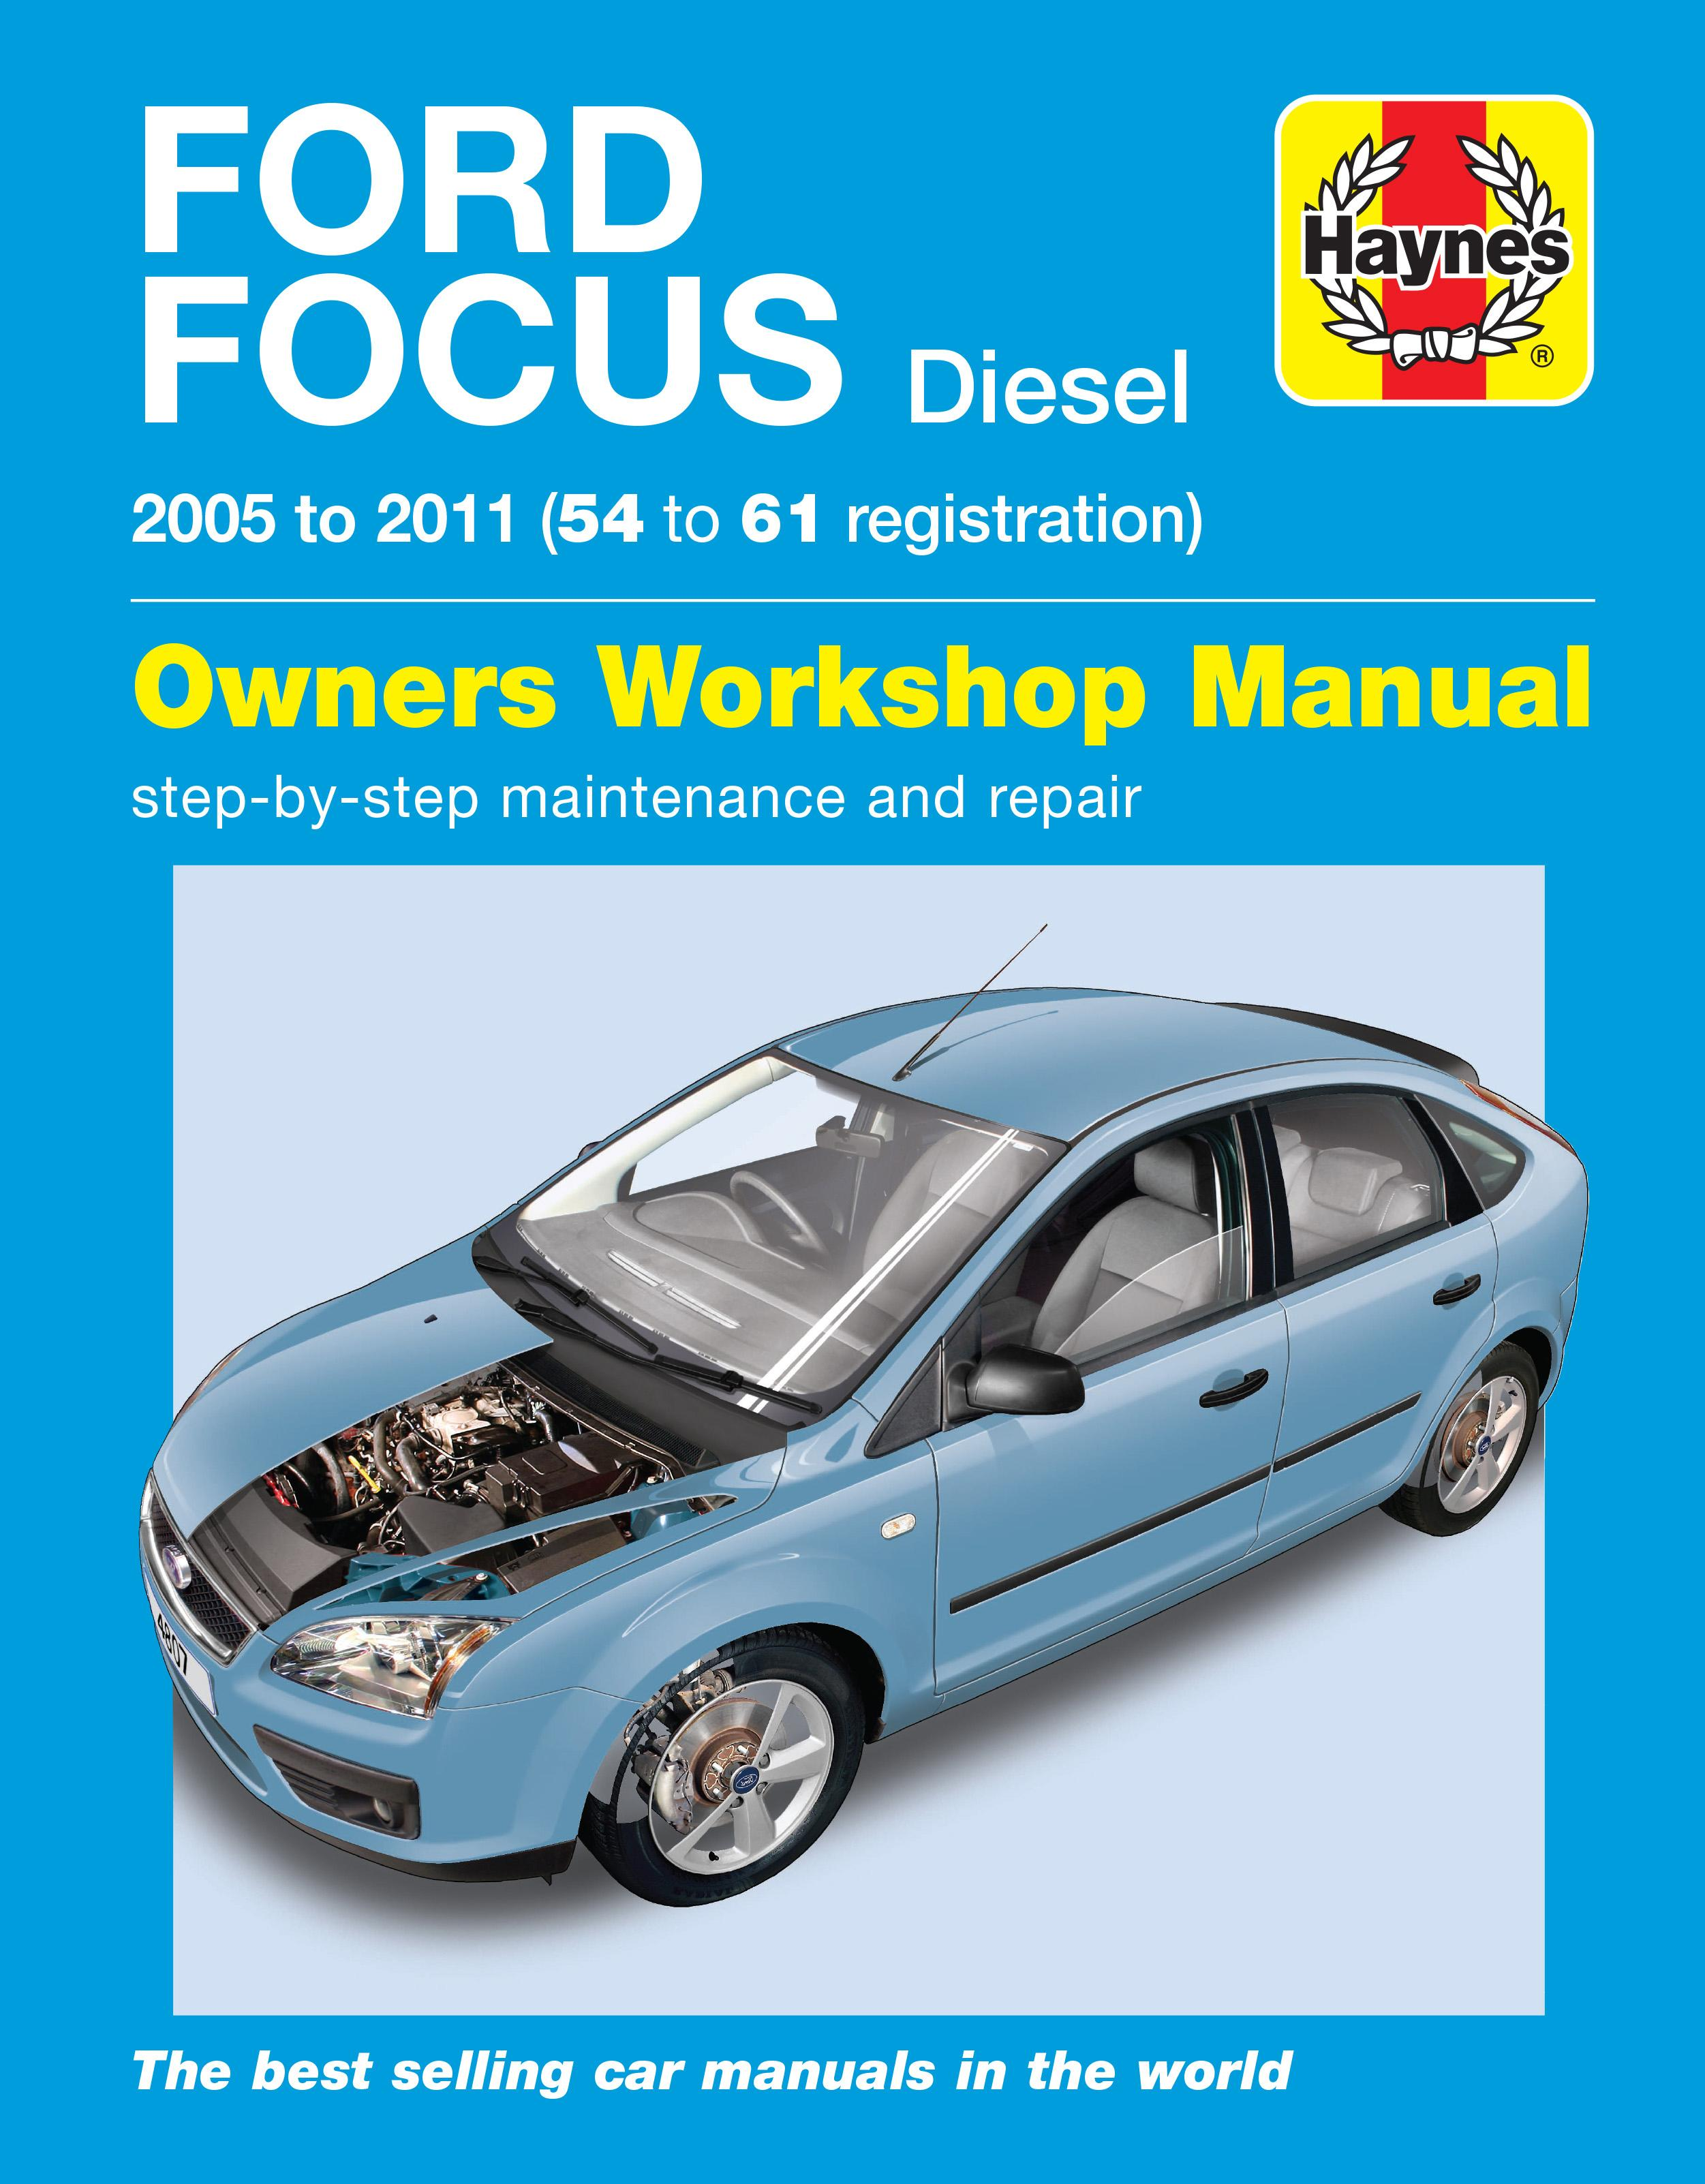 haynes ford focus diesel 05 09 ma rh halfords com 2007 Ford Focus Shop Manual 2007 Ford Focus Manual Book